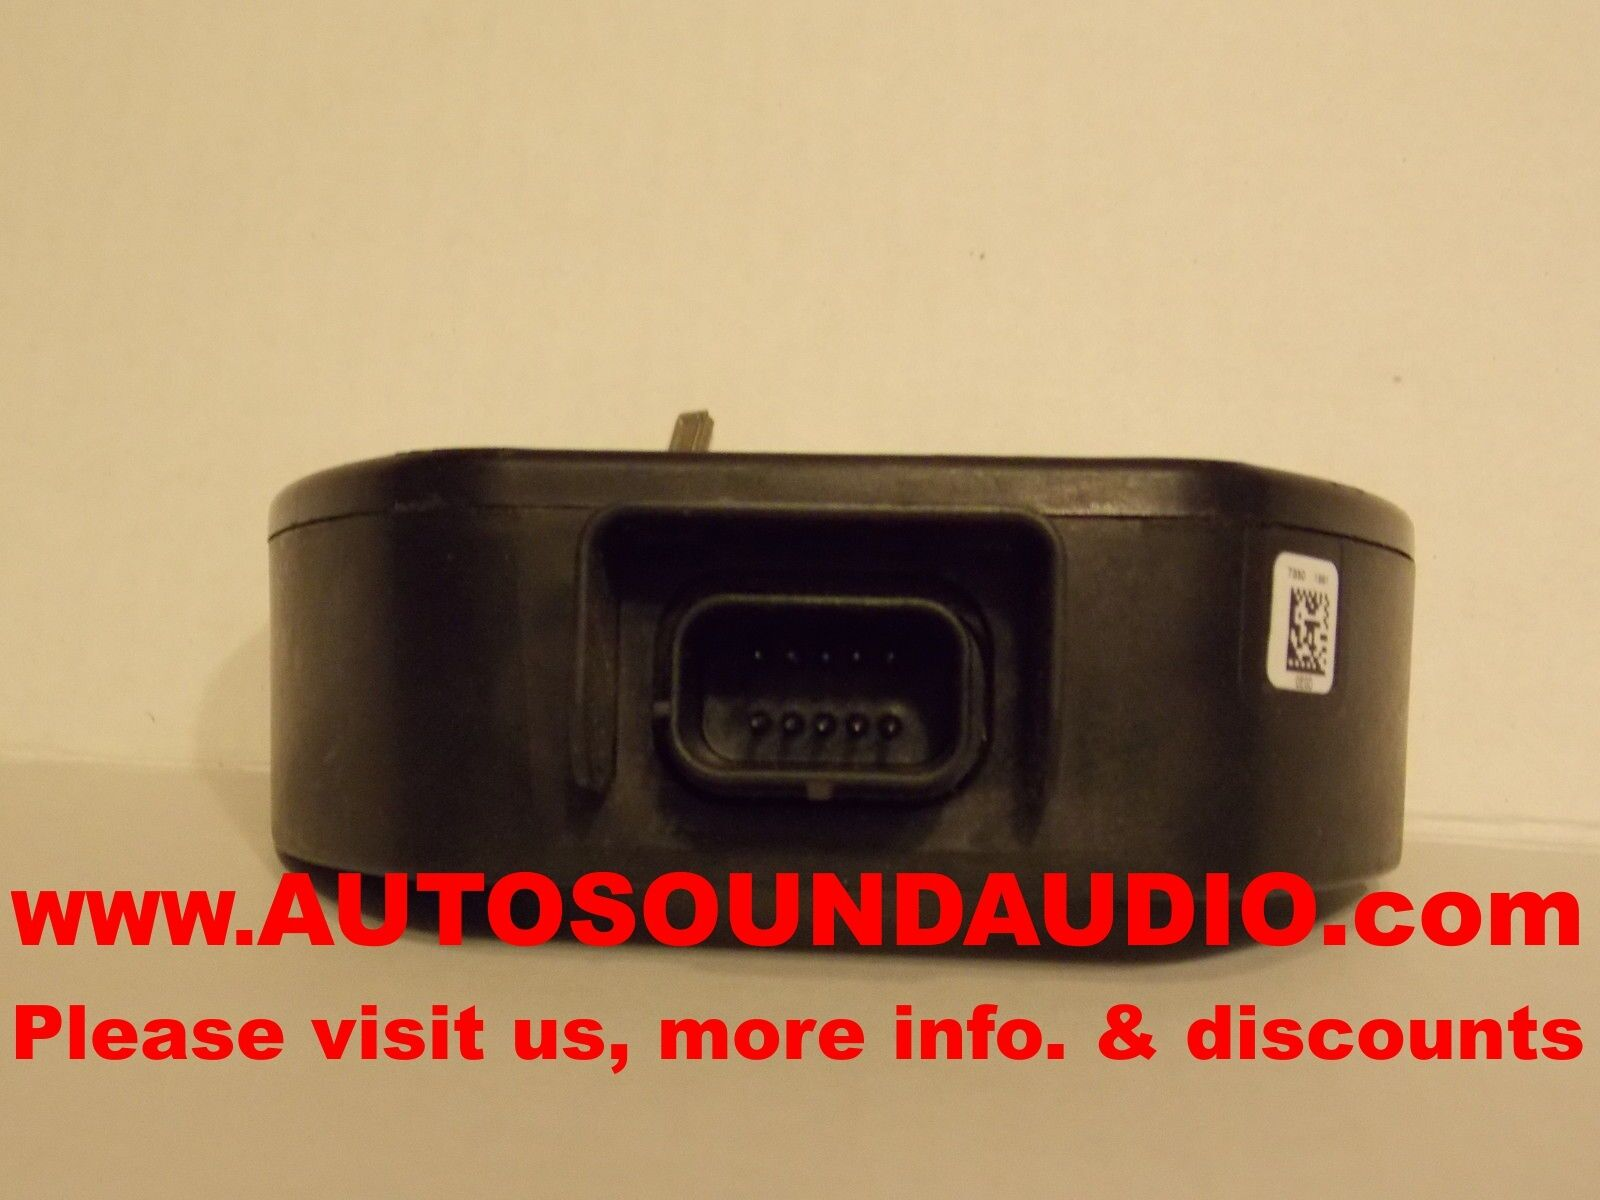 Jeep Liberty Infinity Speaker Amplifier Front Door Amp Kj Crd 2002 Subwoofer Enclosure 1 Of 2only 2 Available 68211510aa